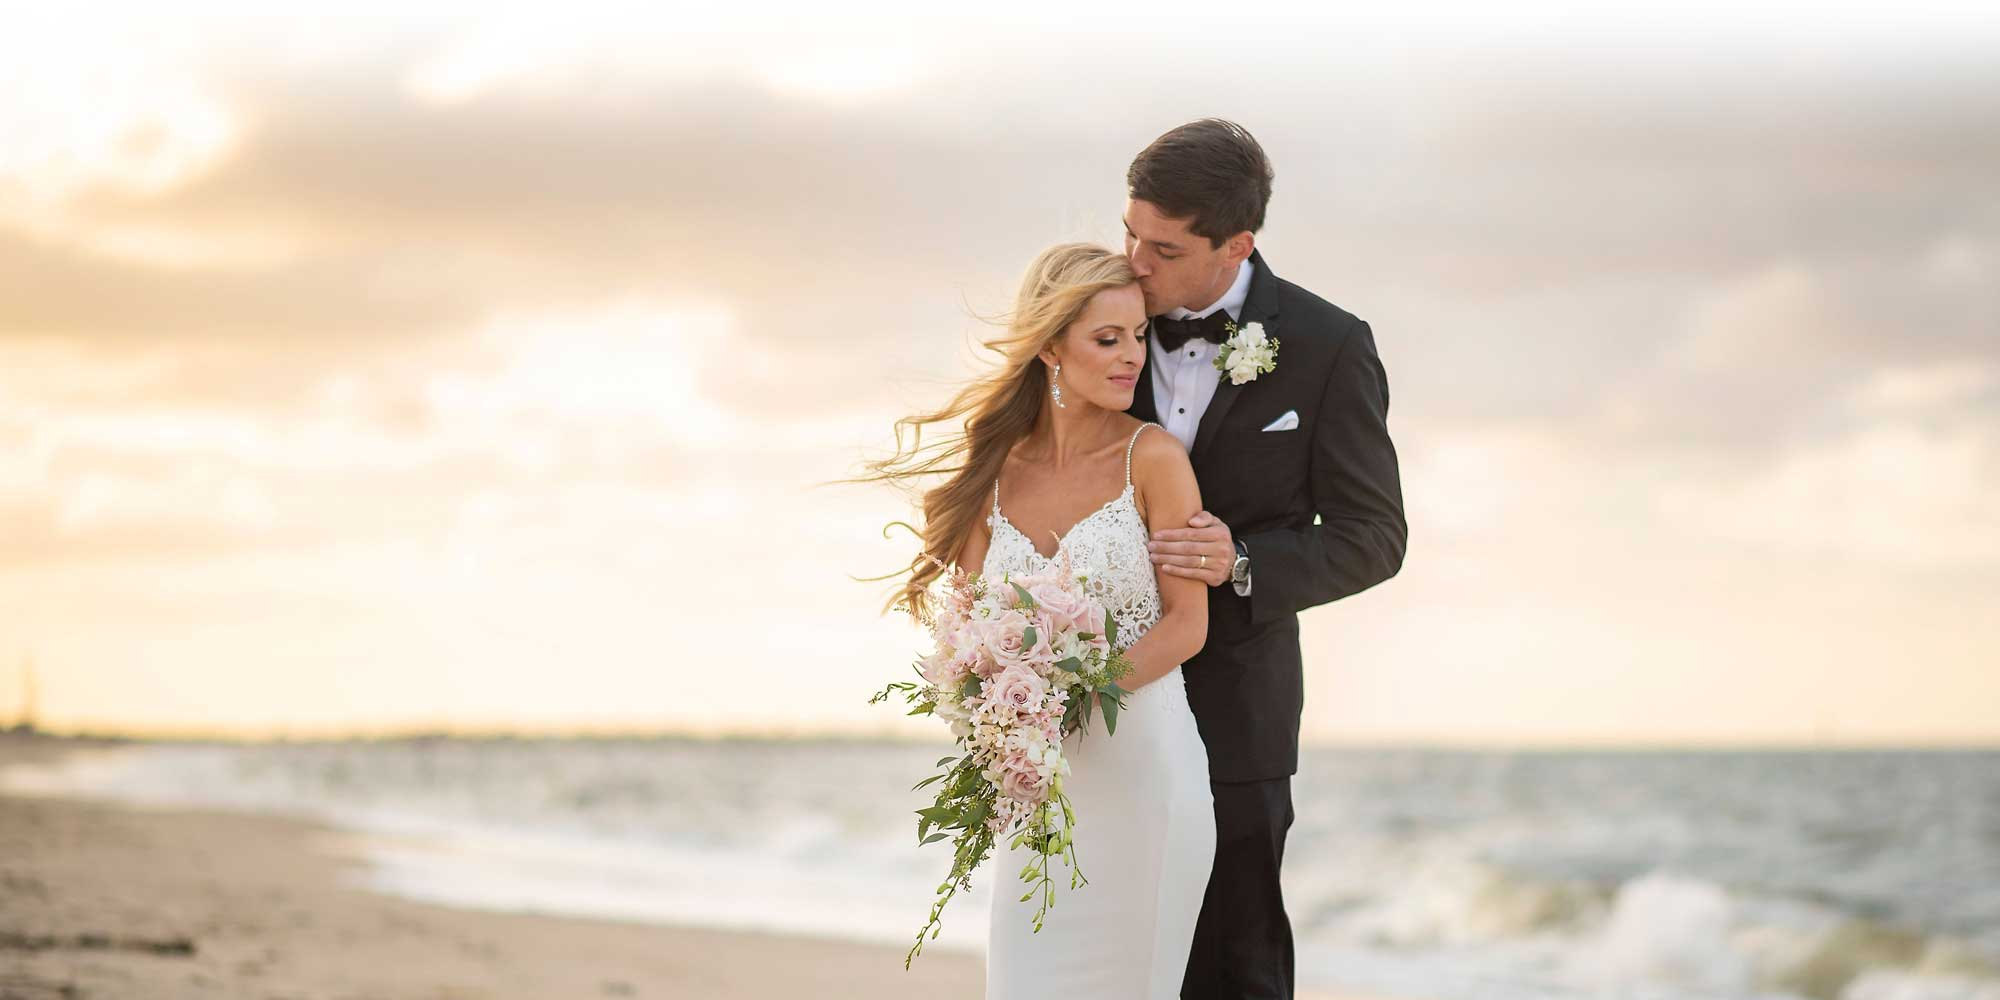 Bride and groom embrace at beach wedding venue at sunset.